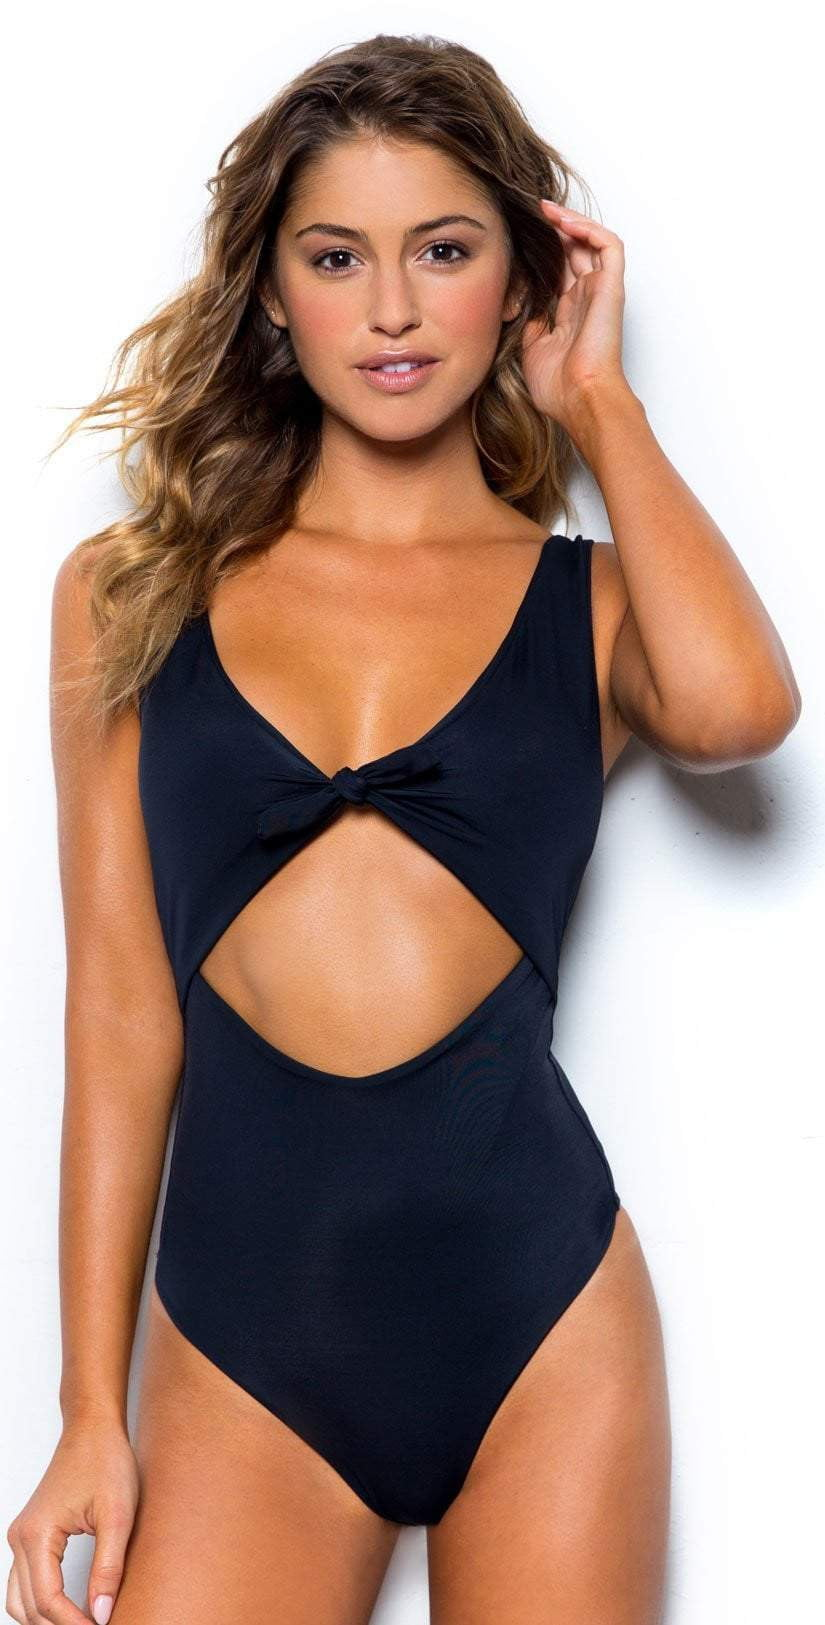 Peixoto Sophia One Piece Swimsuit in Black 31701F-S46-BLK: